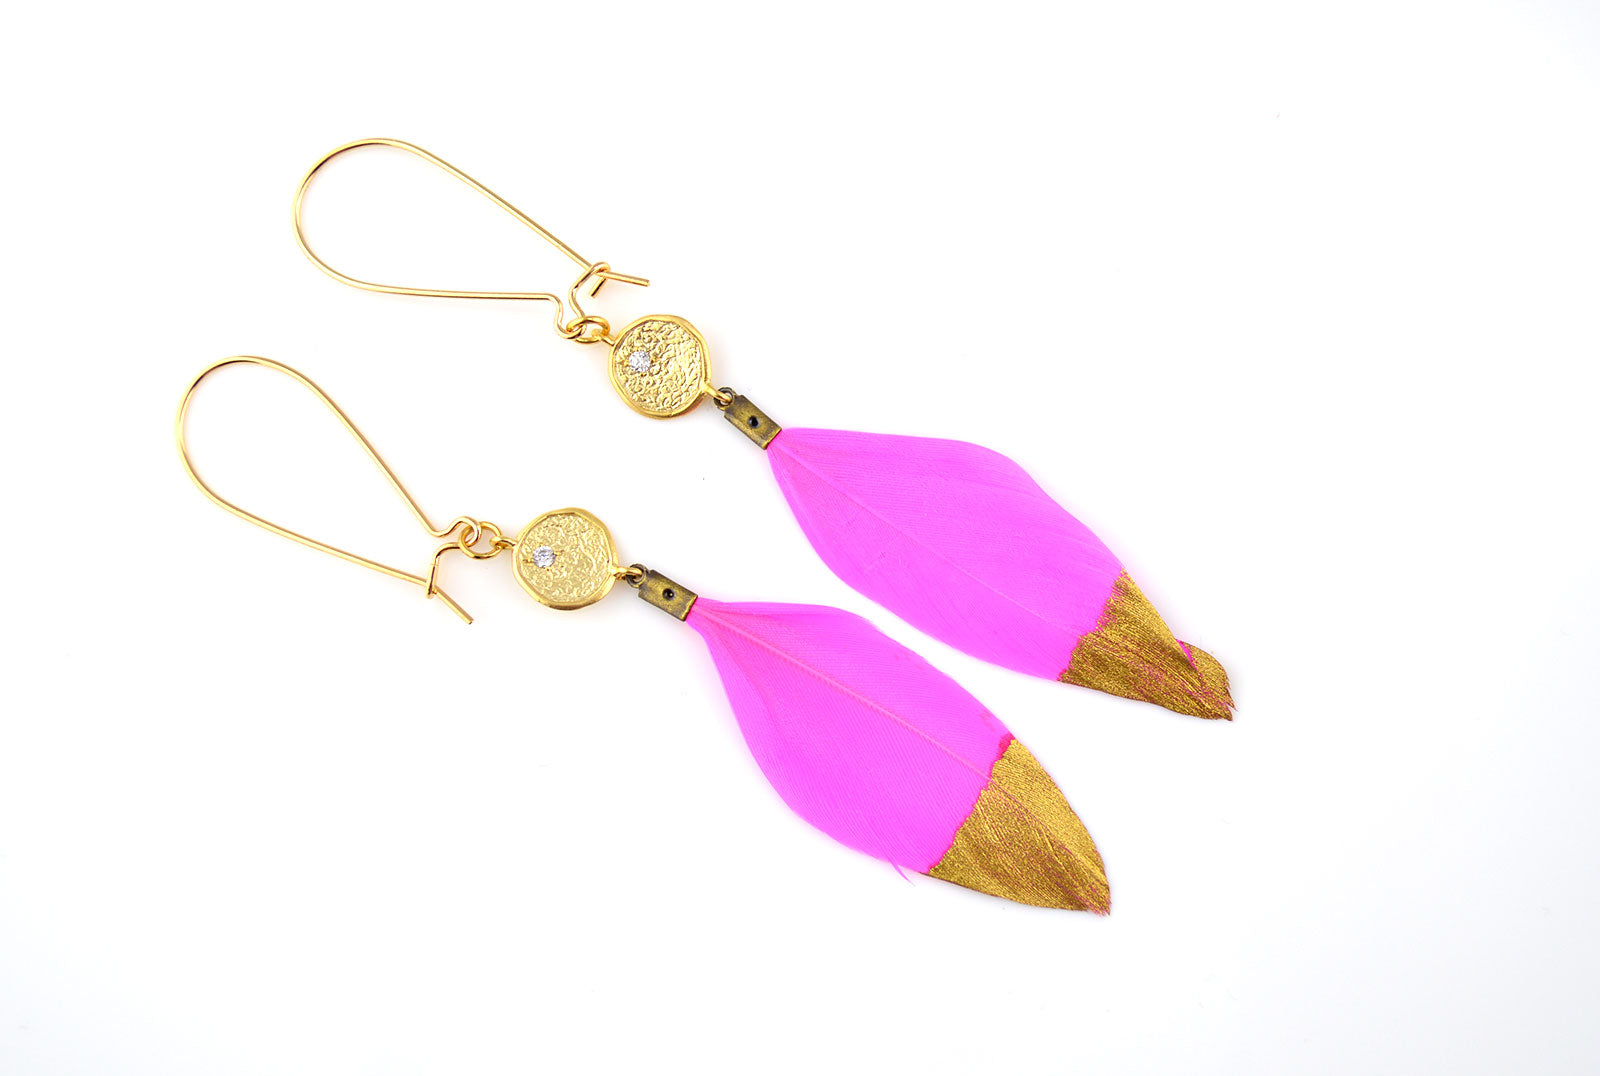 new earrings in scott m poshmark skylar listing neon jewelry kendra pink